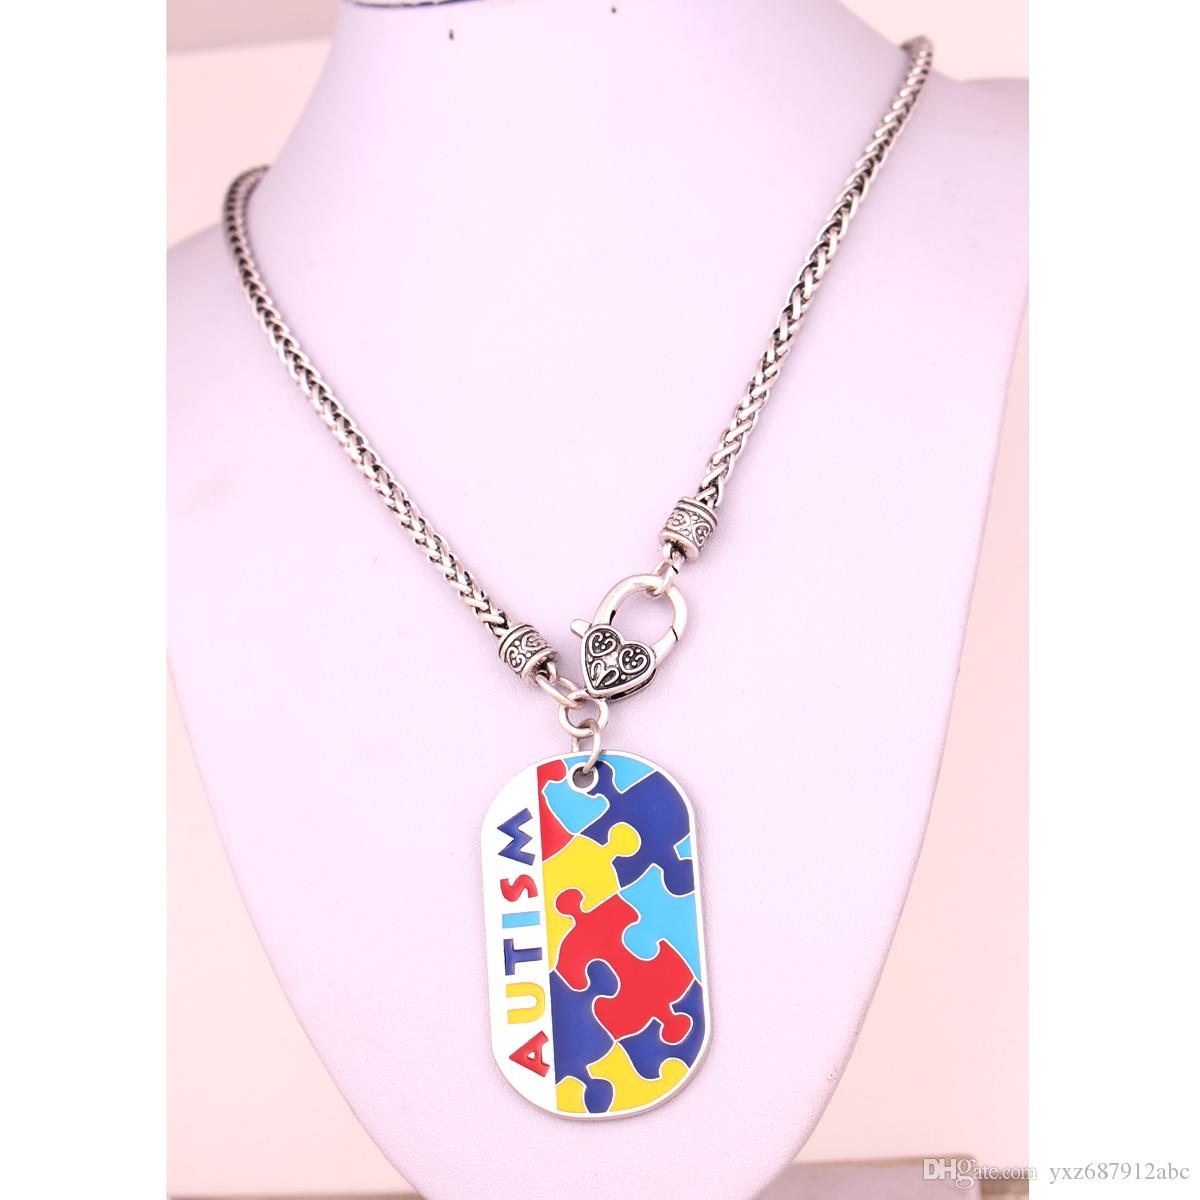 Autism Awareness Identification Necklace Military Dog Tag Style Enamel Color Puzzle Piece Pattern With Wheat Link Chain Necklaces